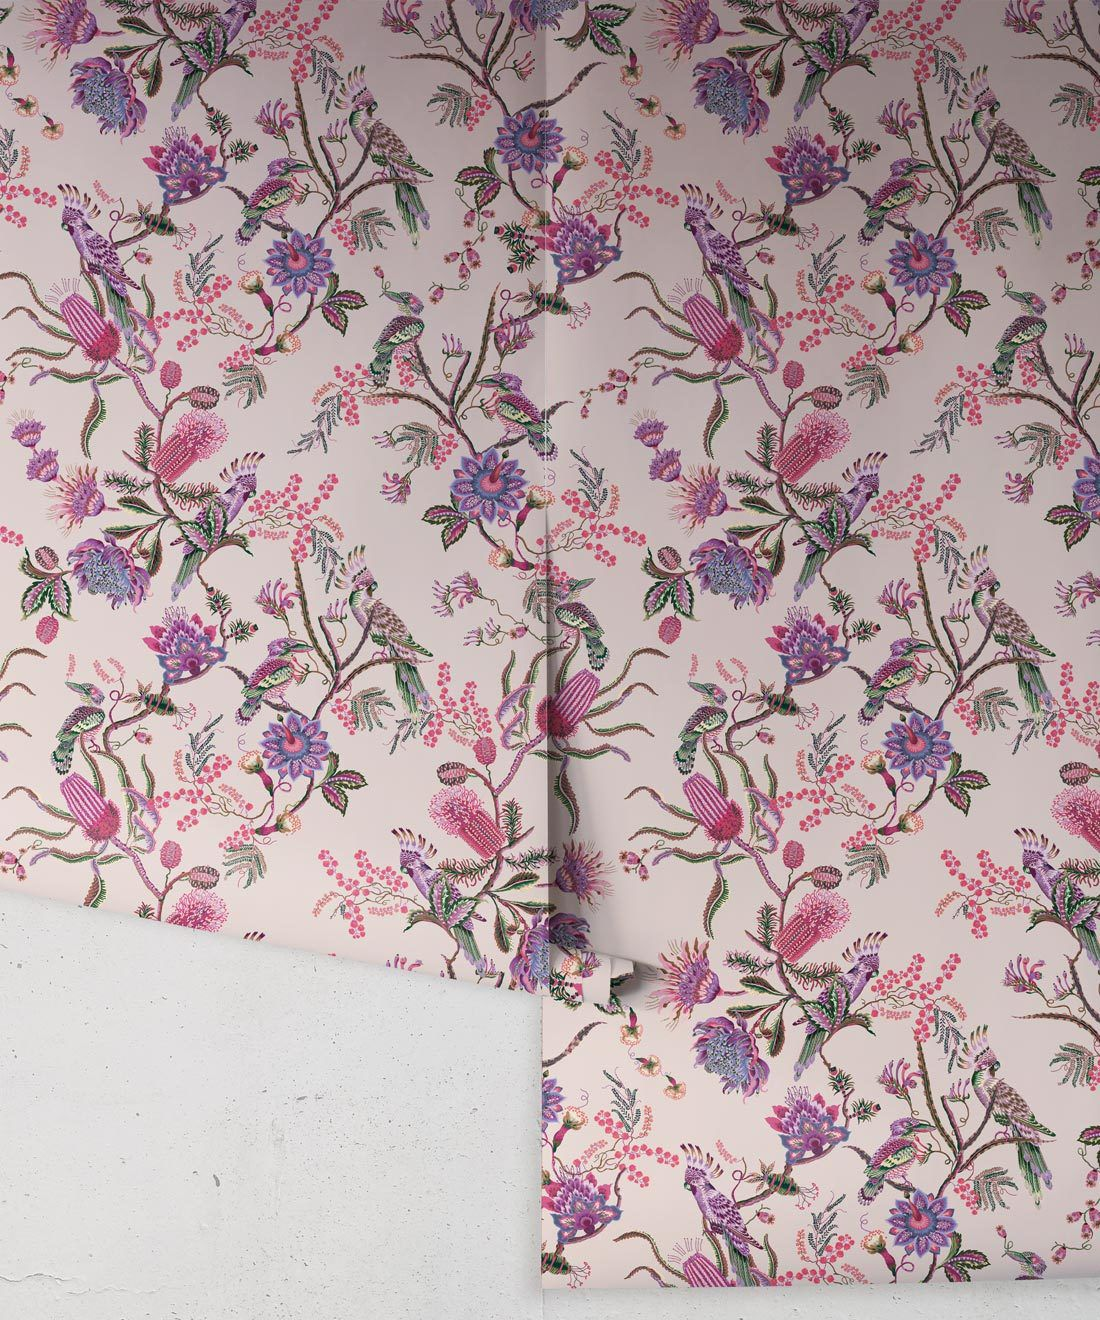 Matilda Wallpaper • Cockatoo, kookaburra • Australian Wallpaper • Milton & King USA • Pinky Roll